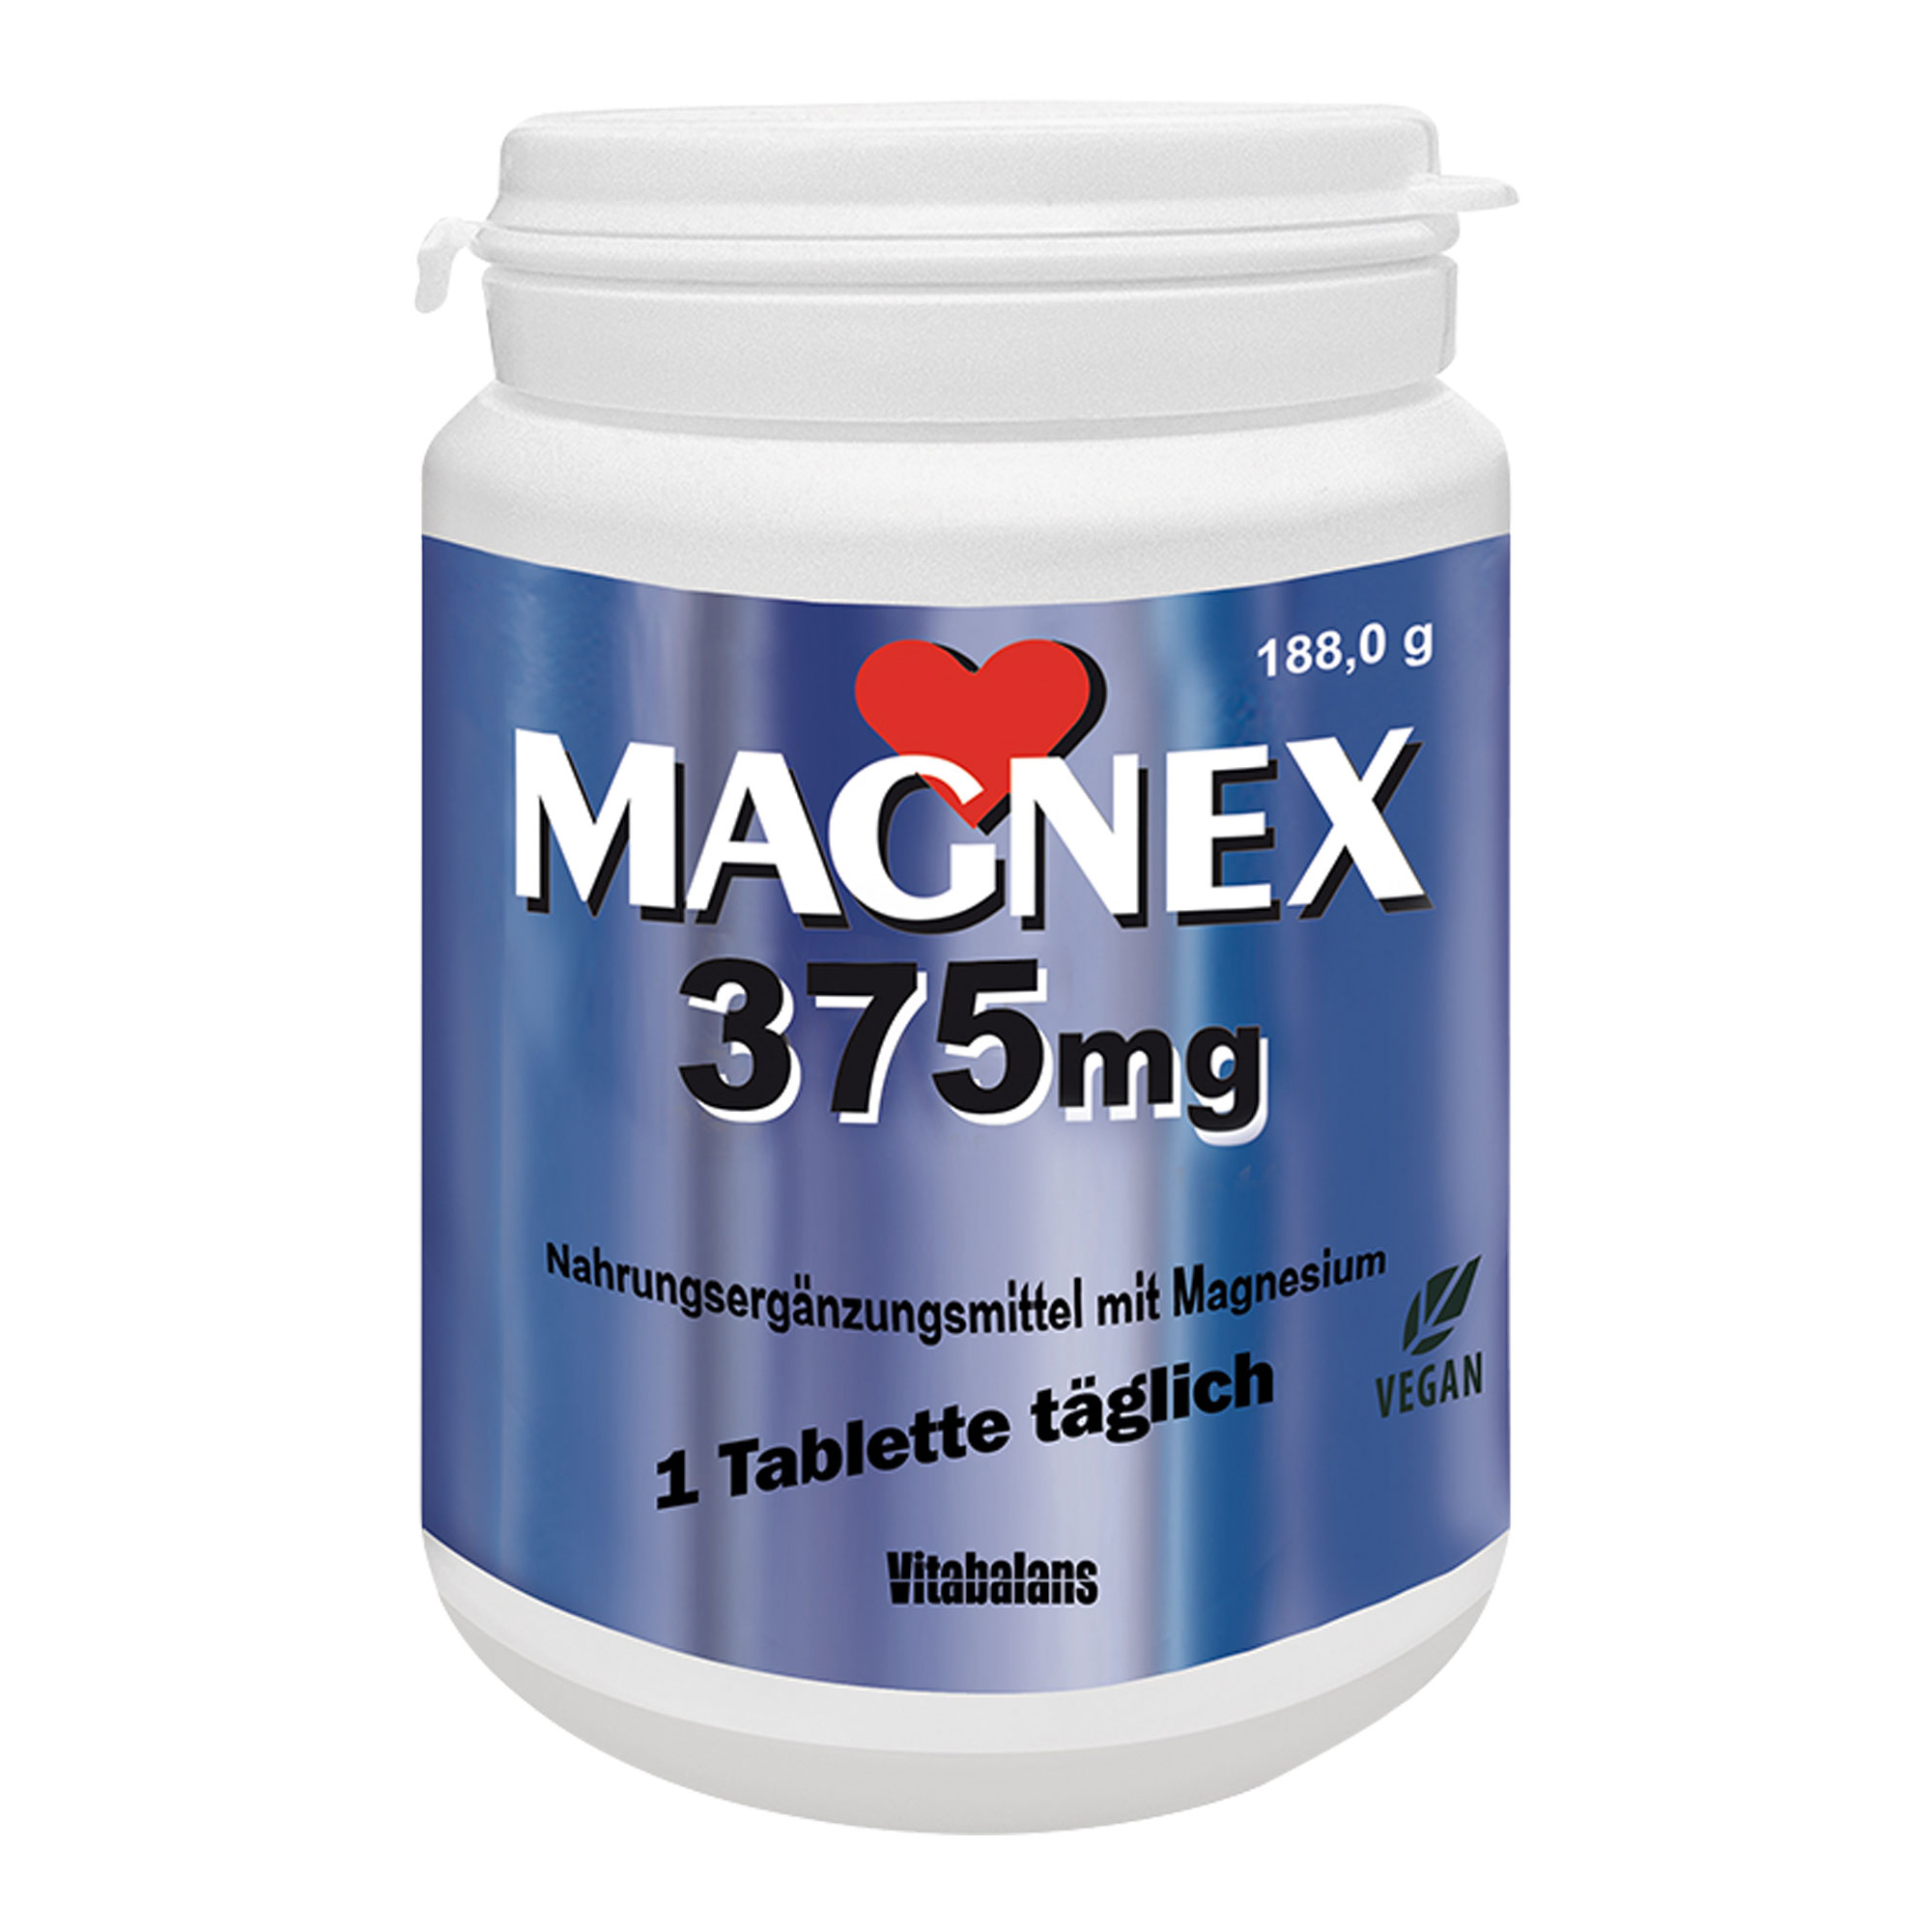 Magnex 375 mg Tabletten